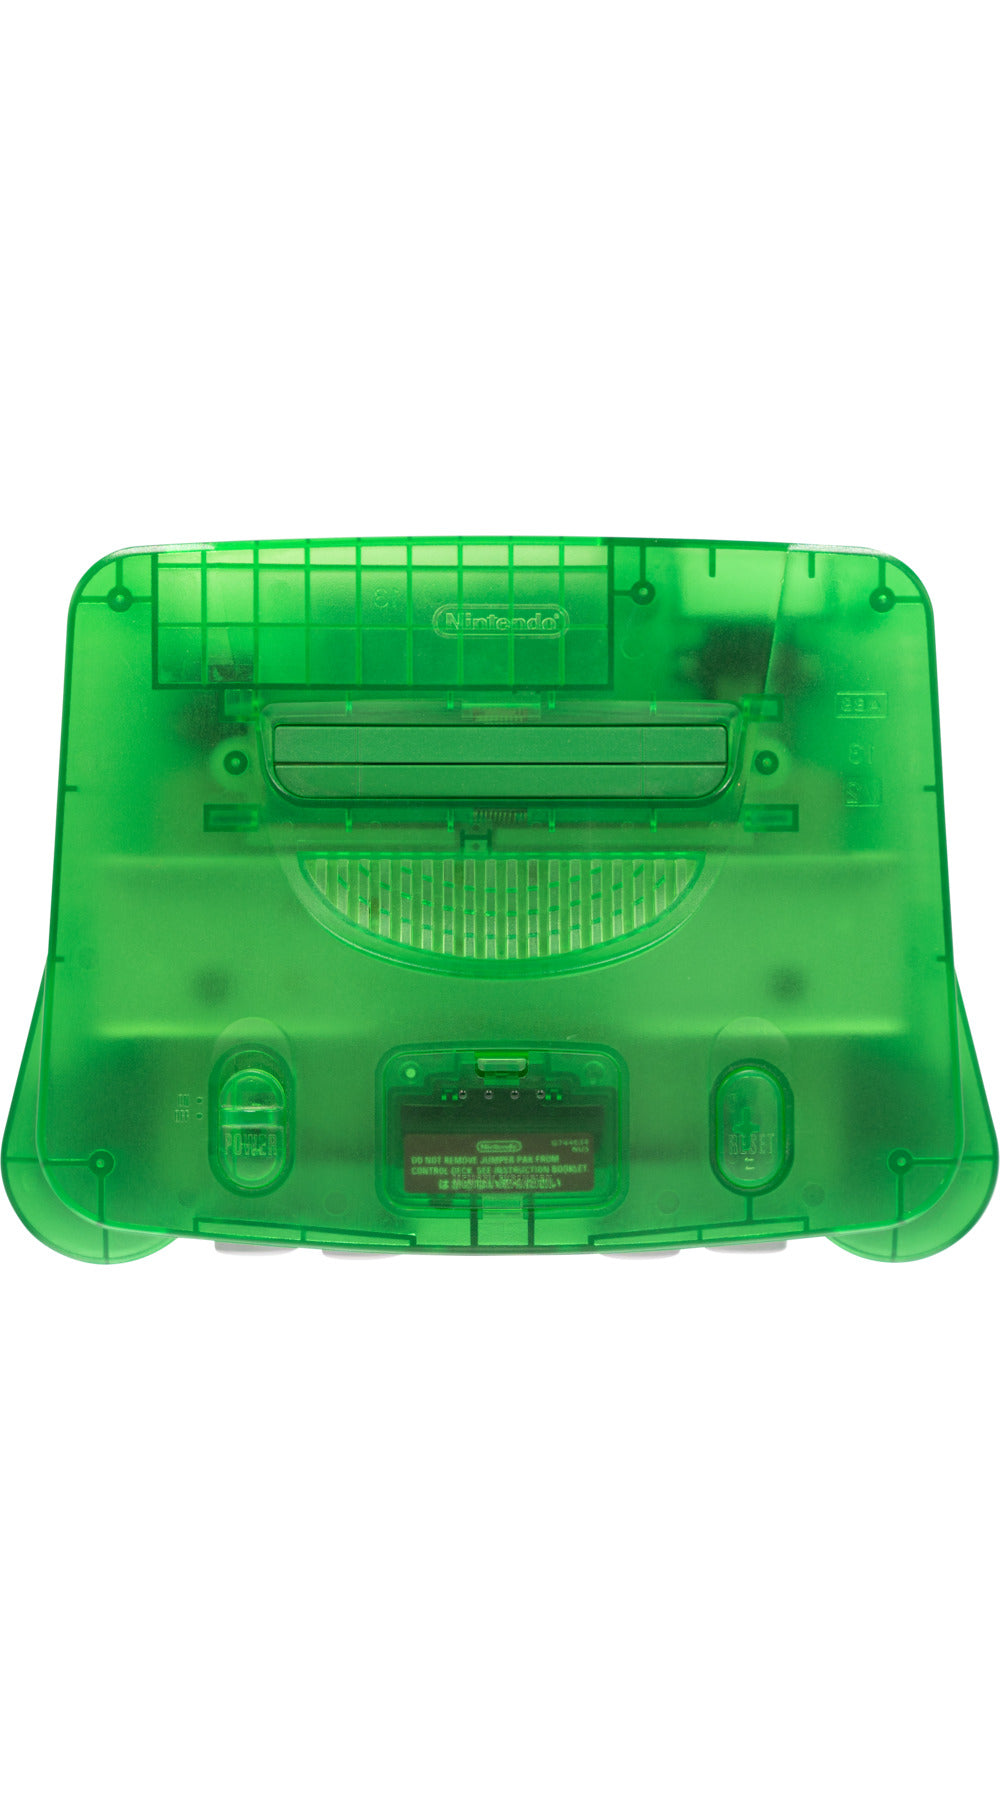 Nintendo 64 Funtastic Jungle Green Console - Video Game Delivery